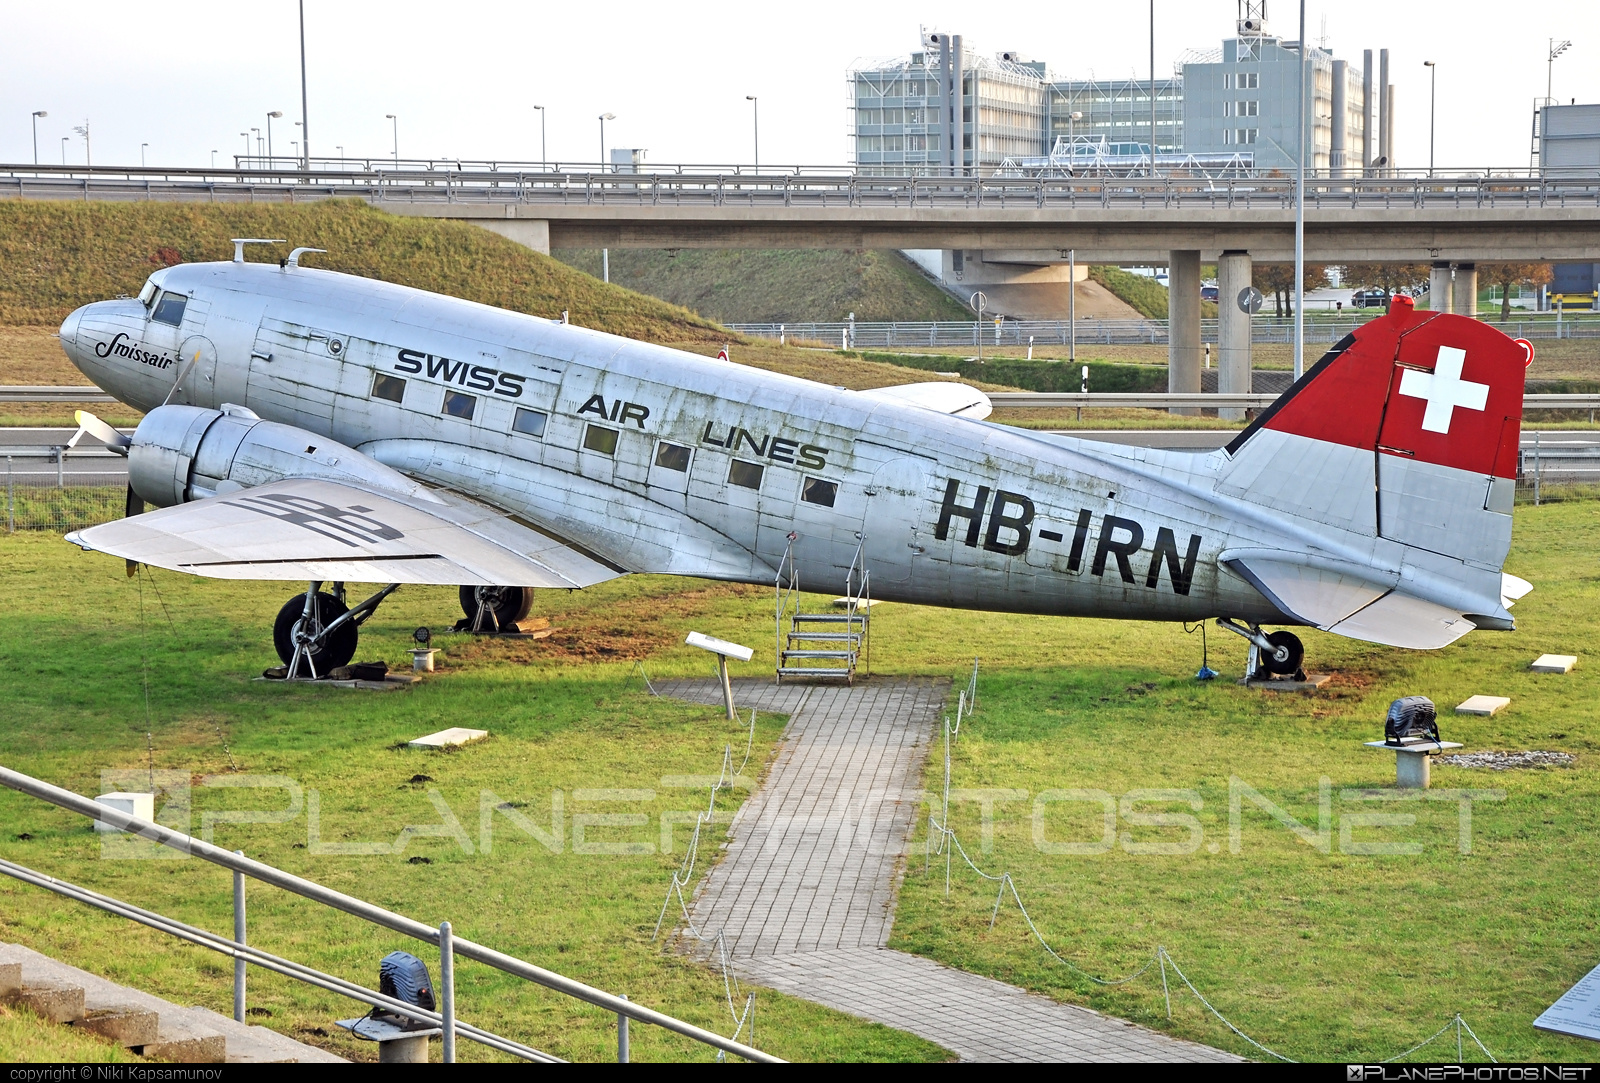 Douglas C-47 Skytrain - HB-IRN operated by Swissair #c47 #dc3 #douglas #skytrain #swissair